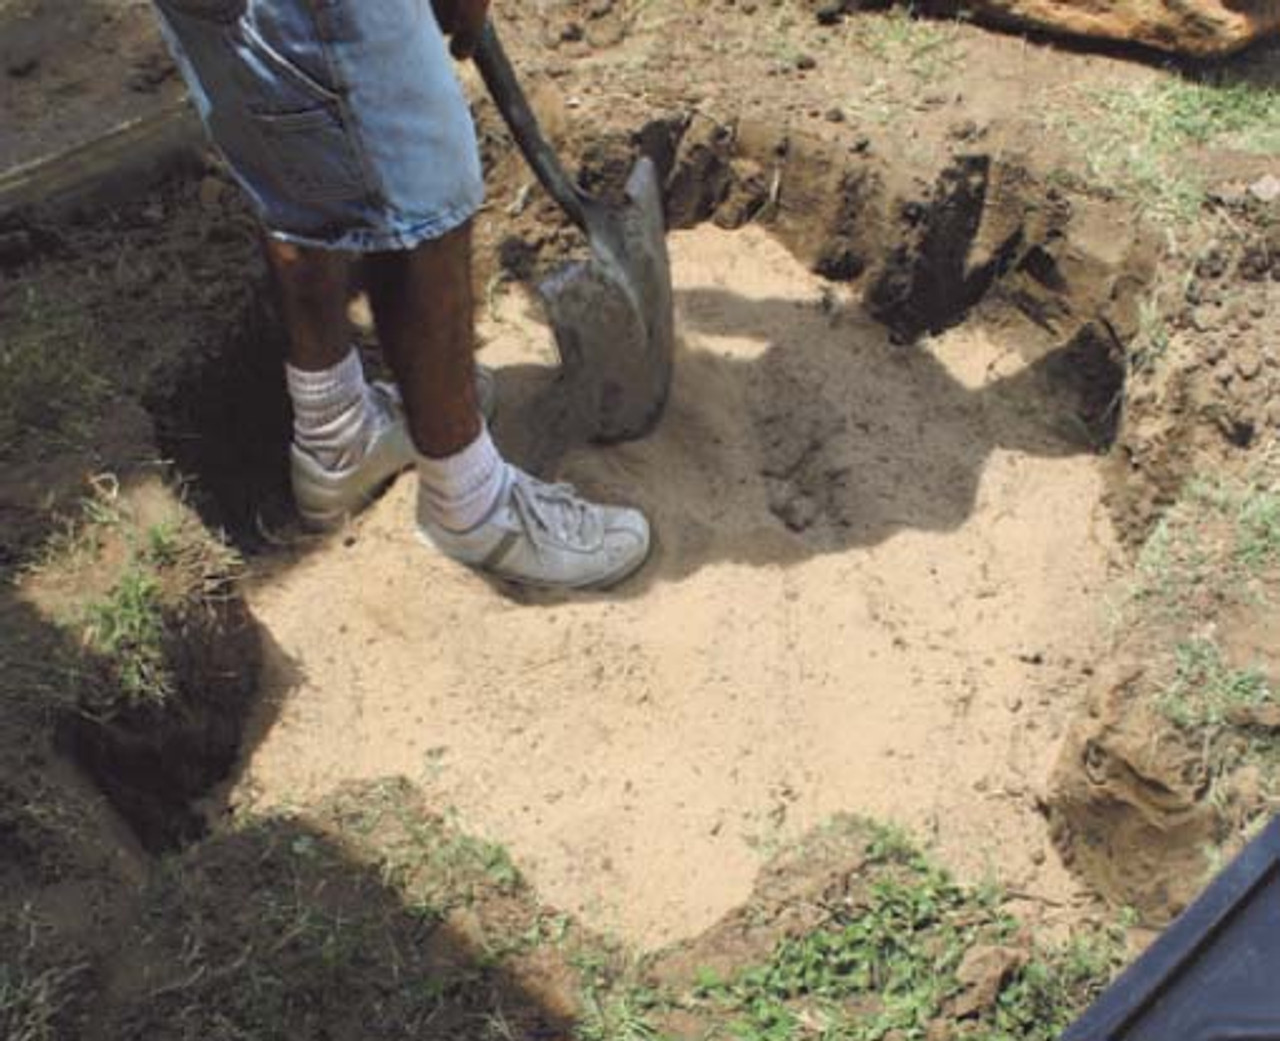 1. Dig hole, compact ground under basin.